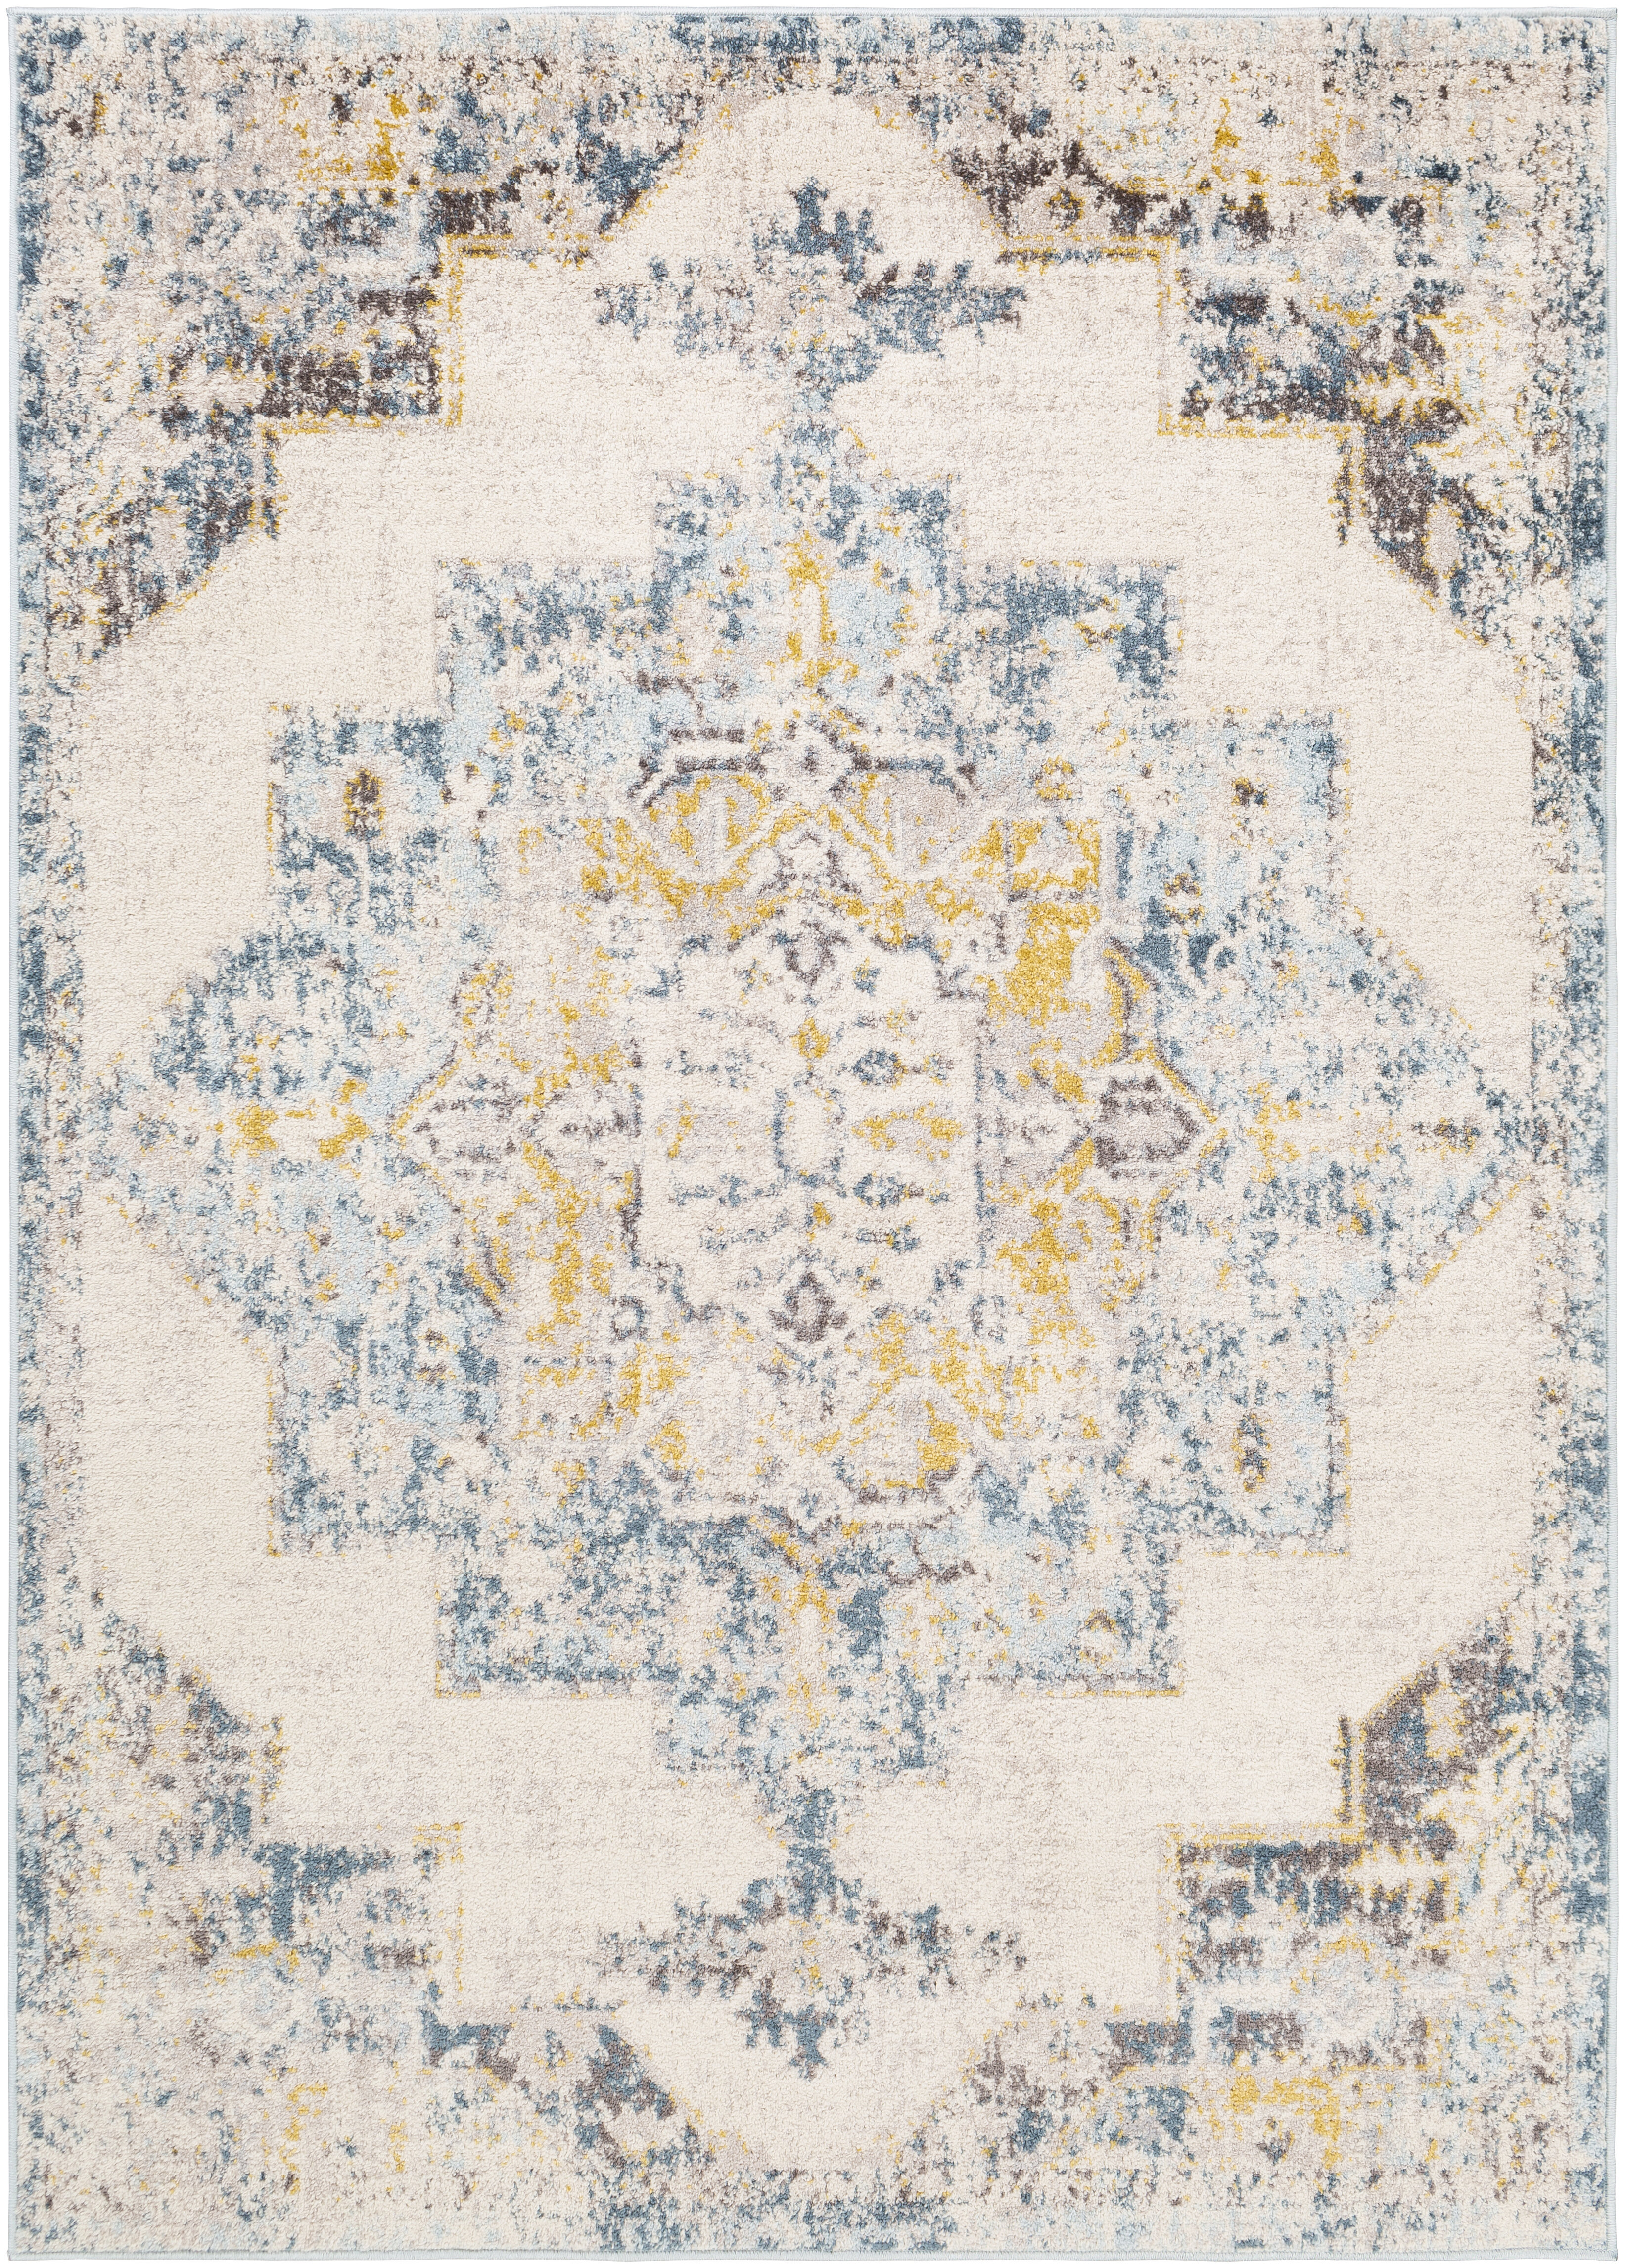 Wayfair Black Yellow Gold Area Rugs You Ll Love In 2021